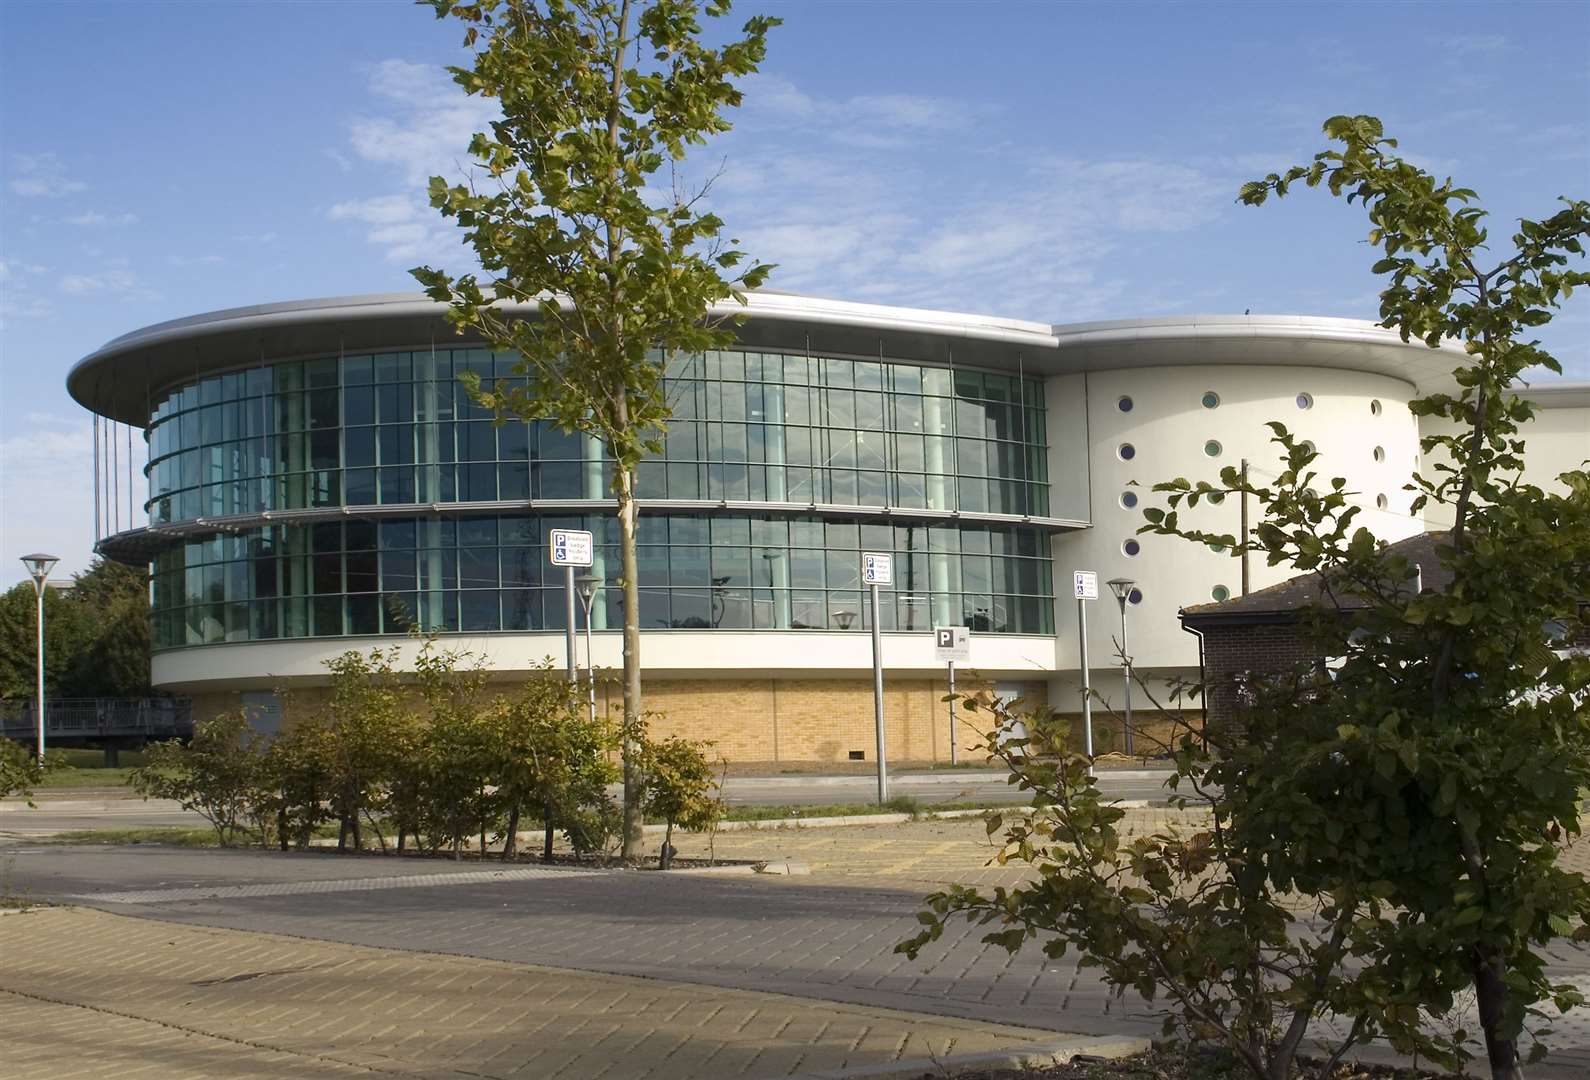 The centre underwent a £17m revamp in the mid-2000s